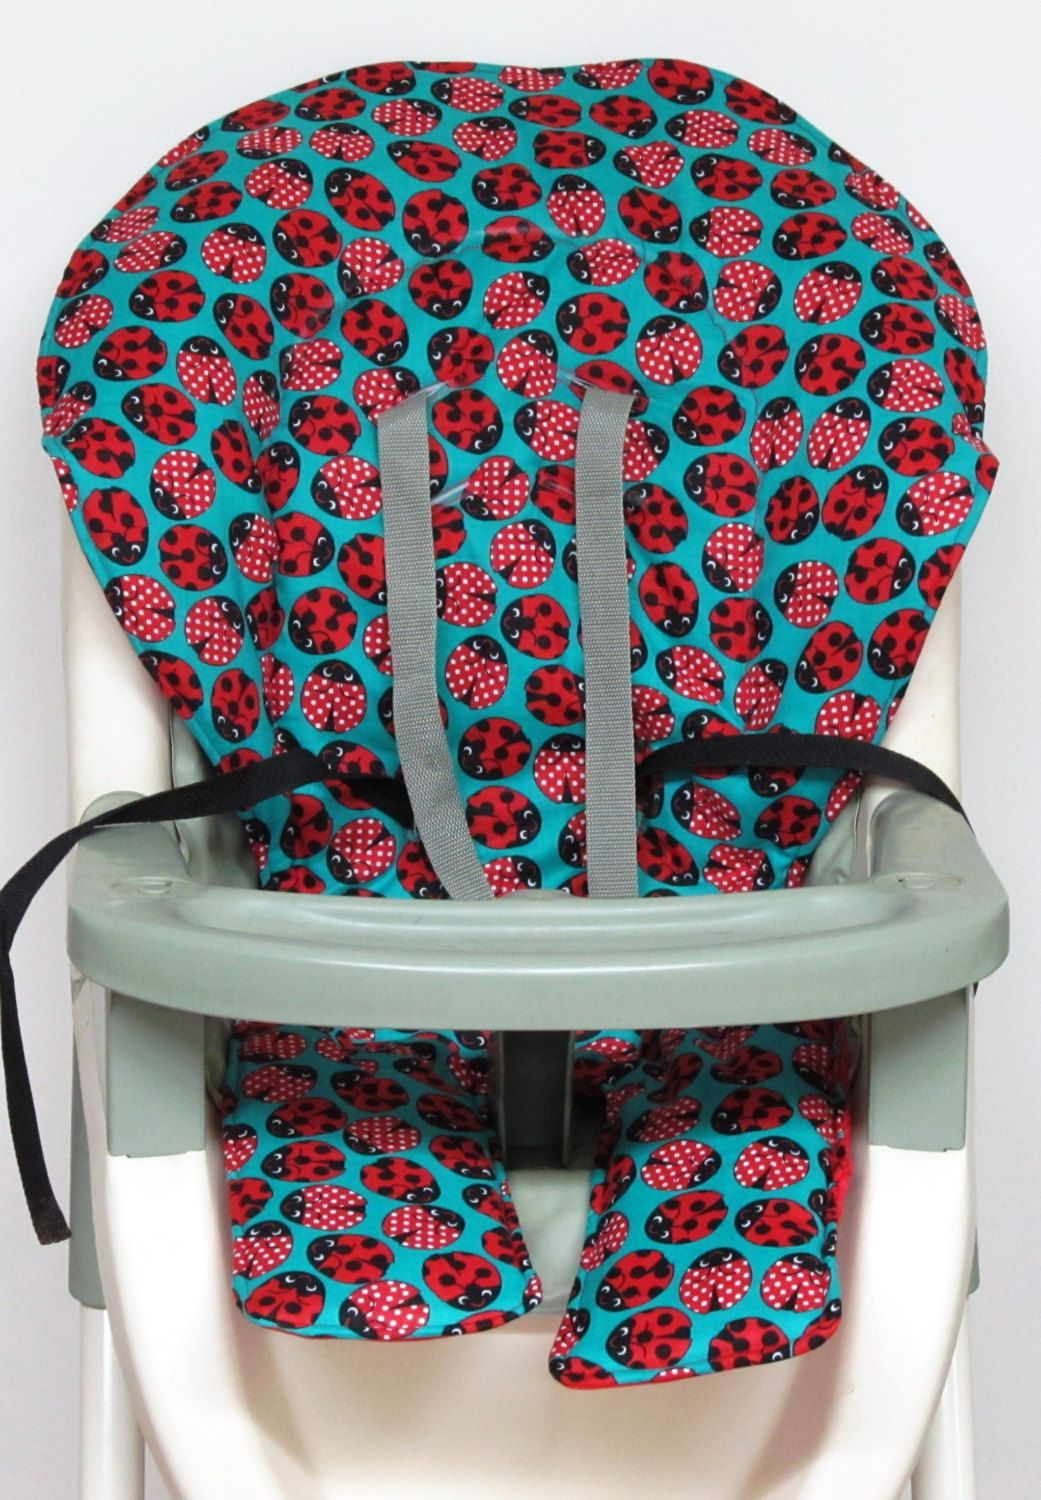 Replacement high chair covers - Graco High Chair Cover Baby Accessory Replacement Cover Ship Ready Pad High Chair Cushion Kids And Baby Baby Care Ladybug On Aqua